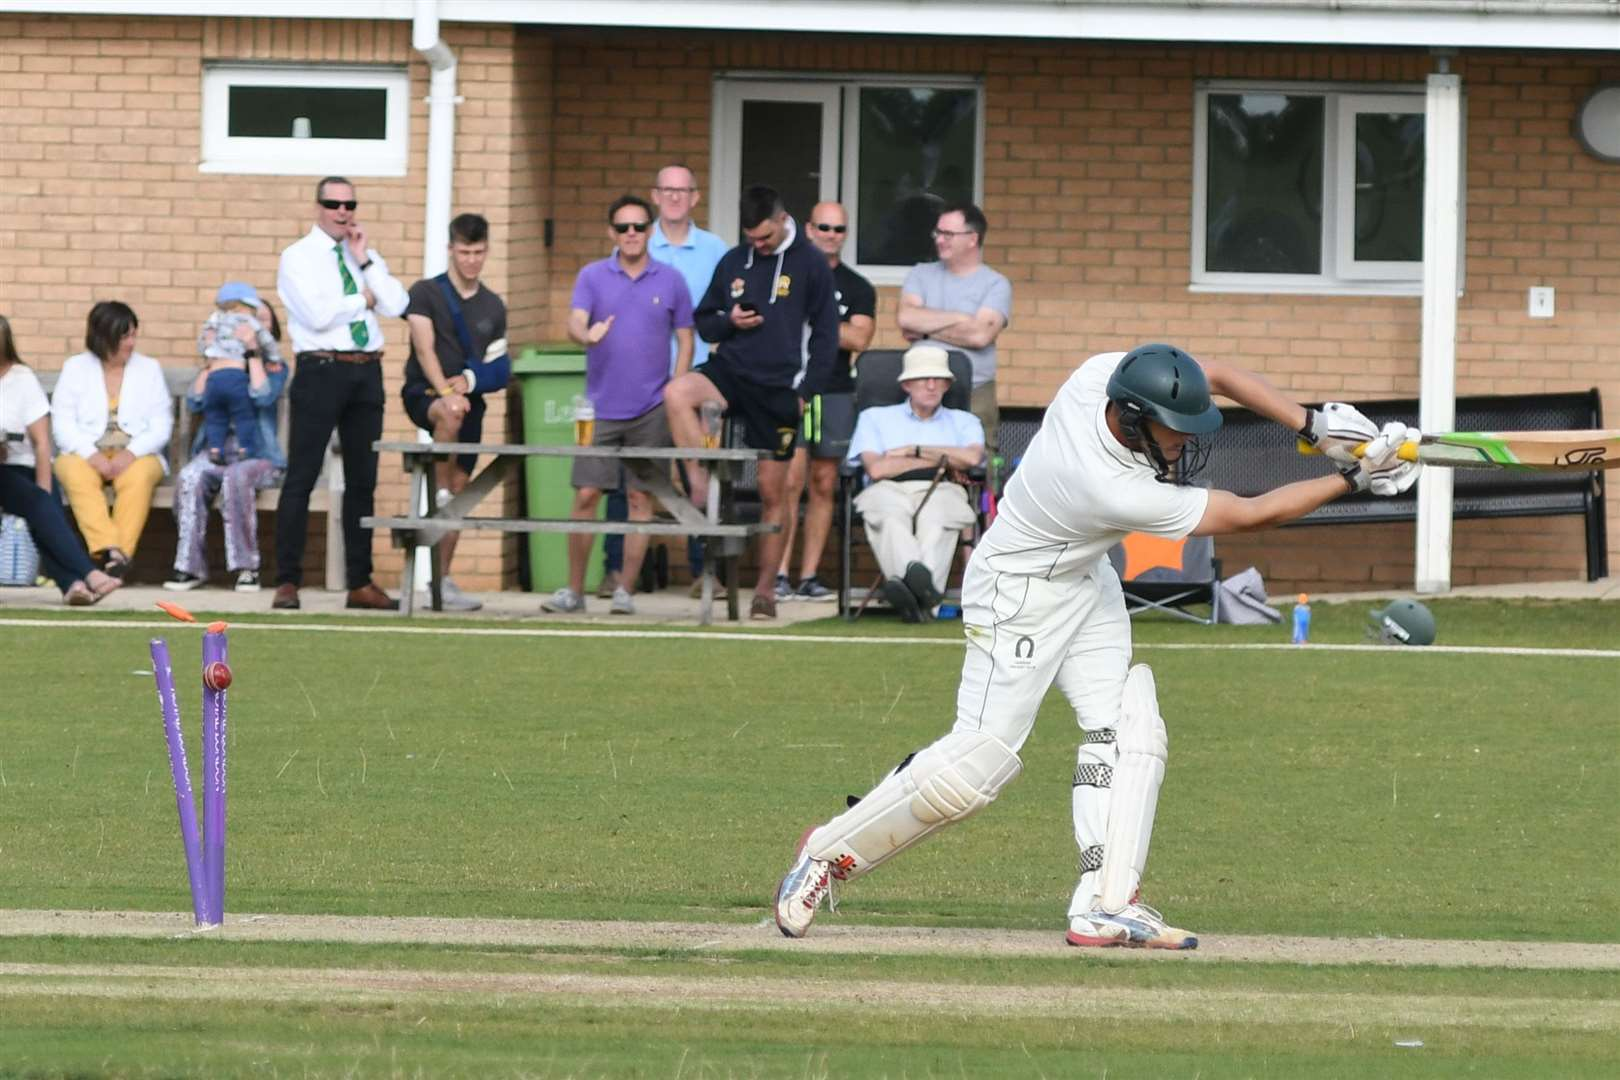 Oakham defeated Uppingham on Saturday to win the Leicestershire League Division One title. Photo: Alan Walters (16693583)